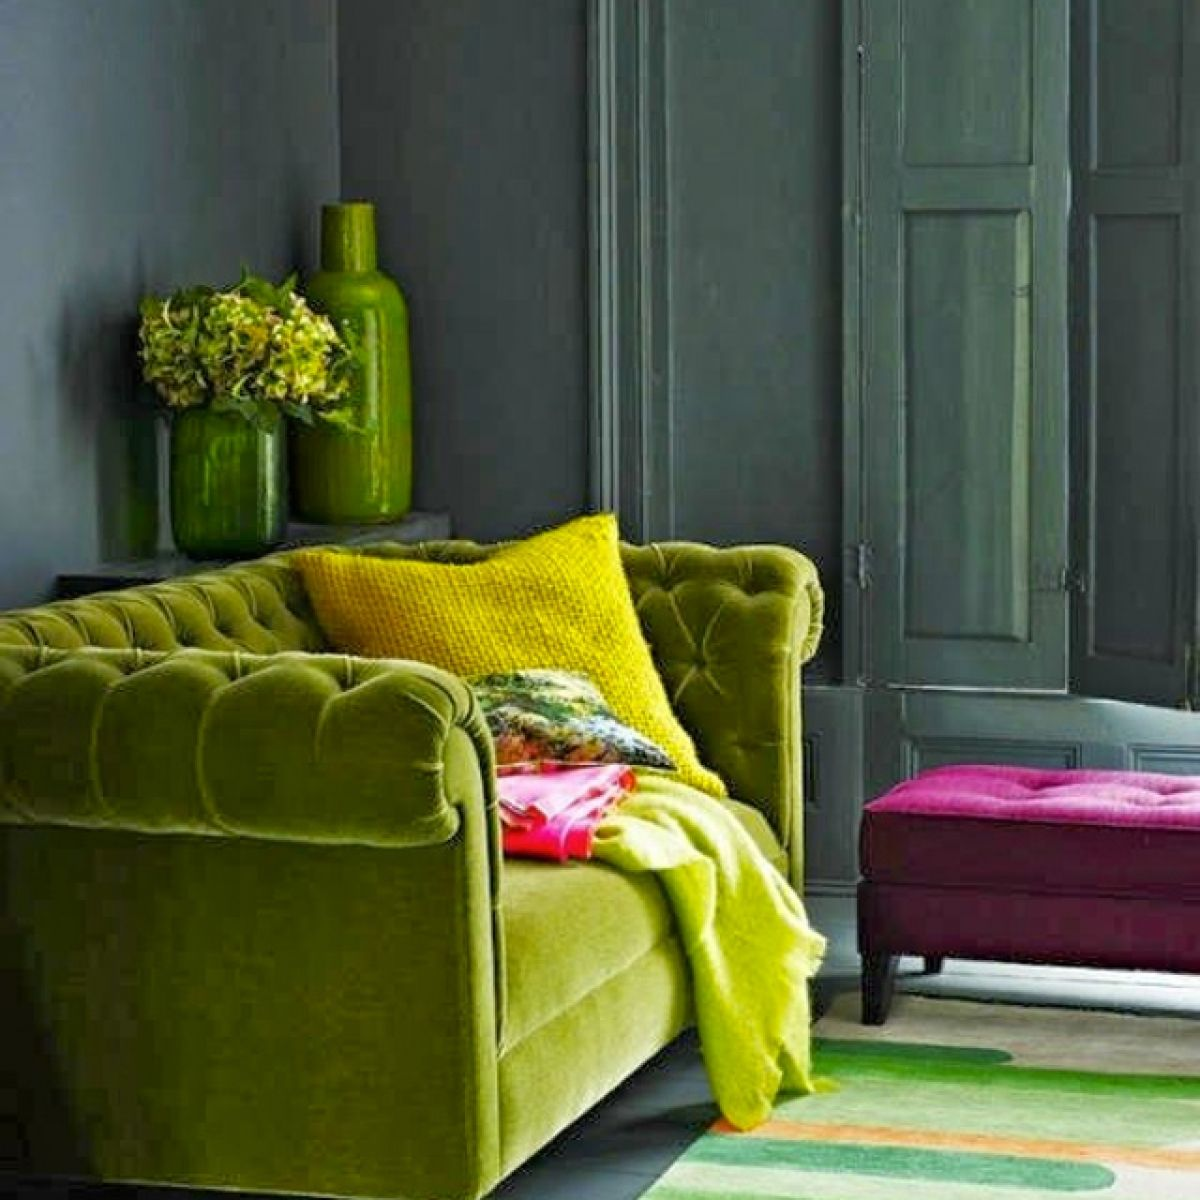 Velvet Green Sofa With Dark Grey Walls And Shutters Pink Footstool Yellow Cushion In Living